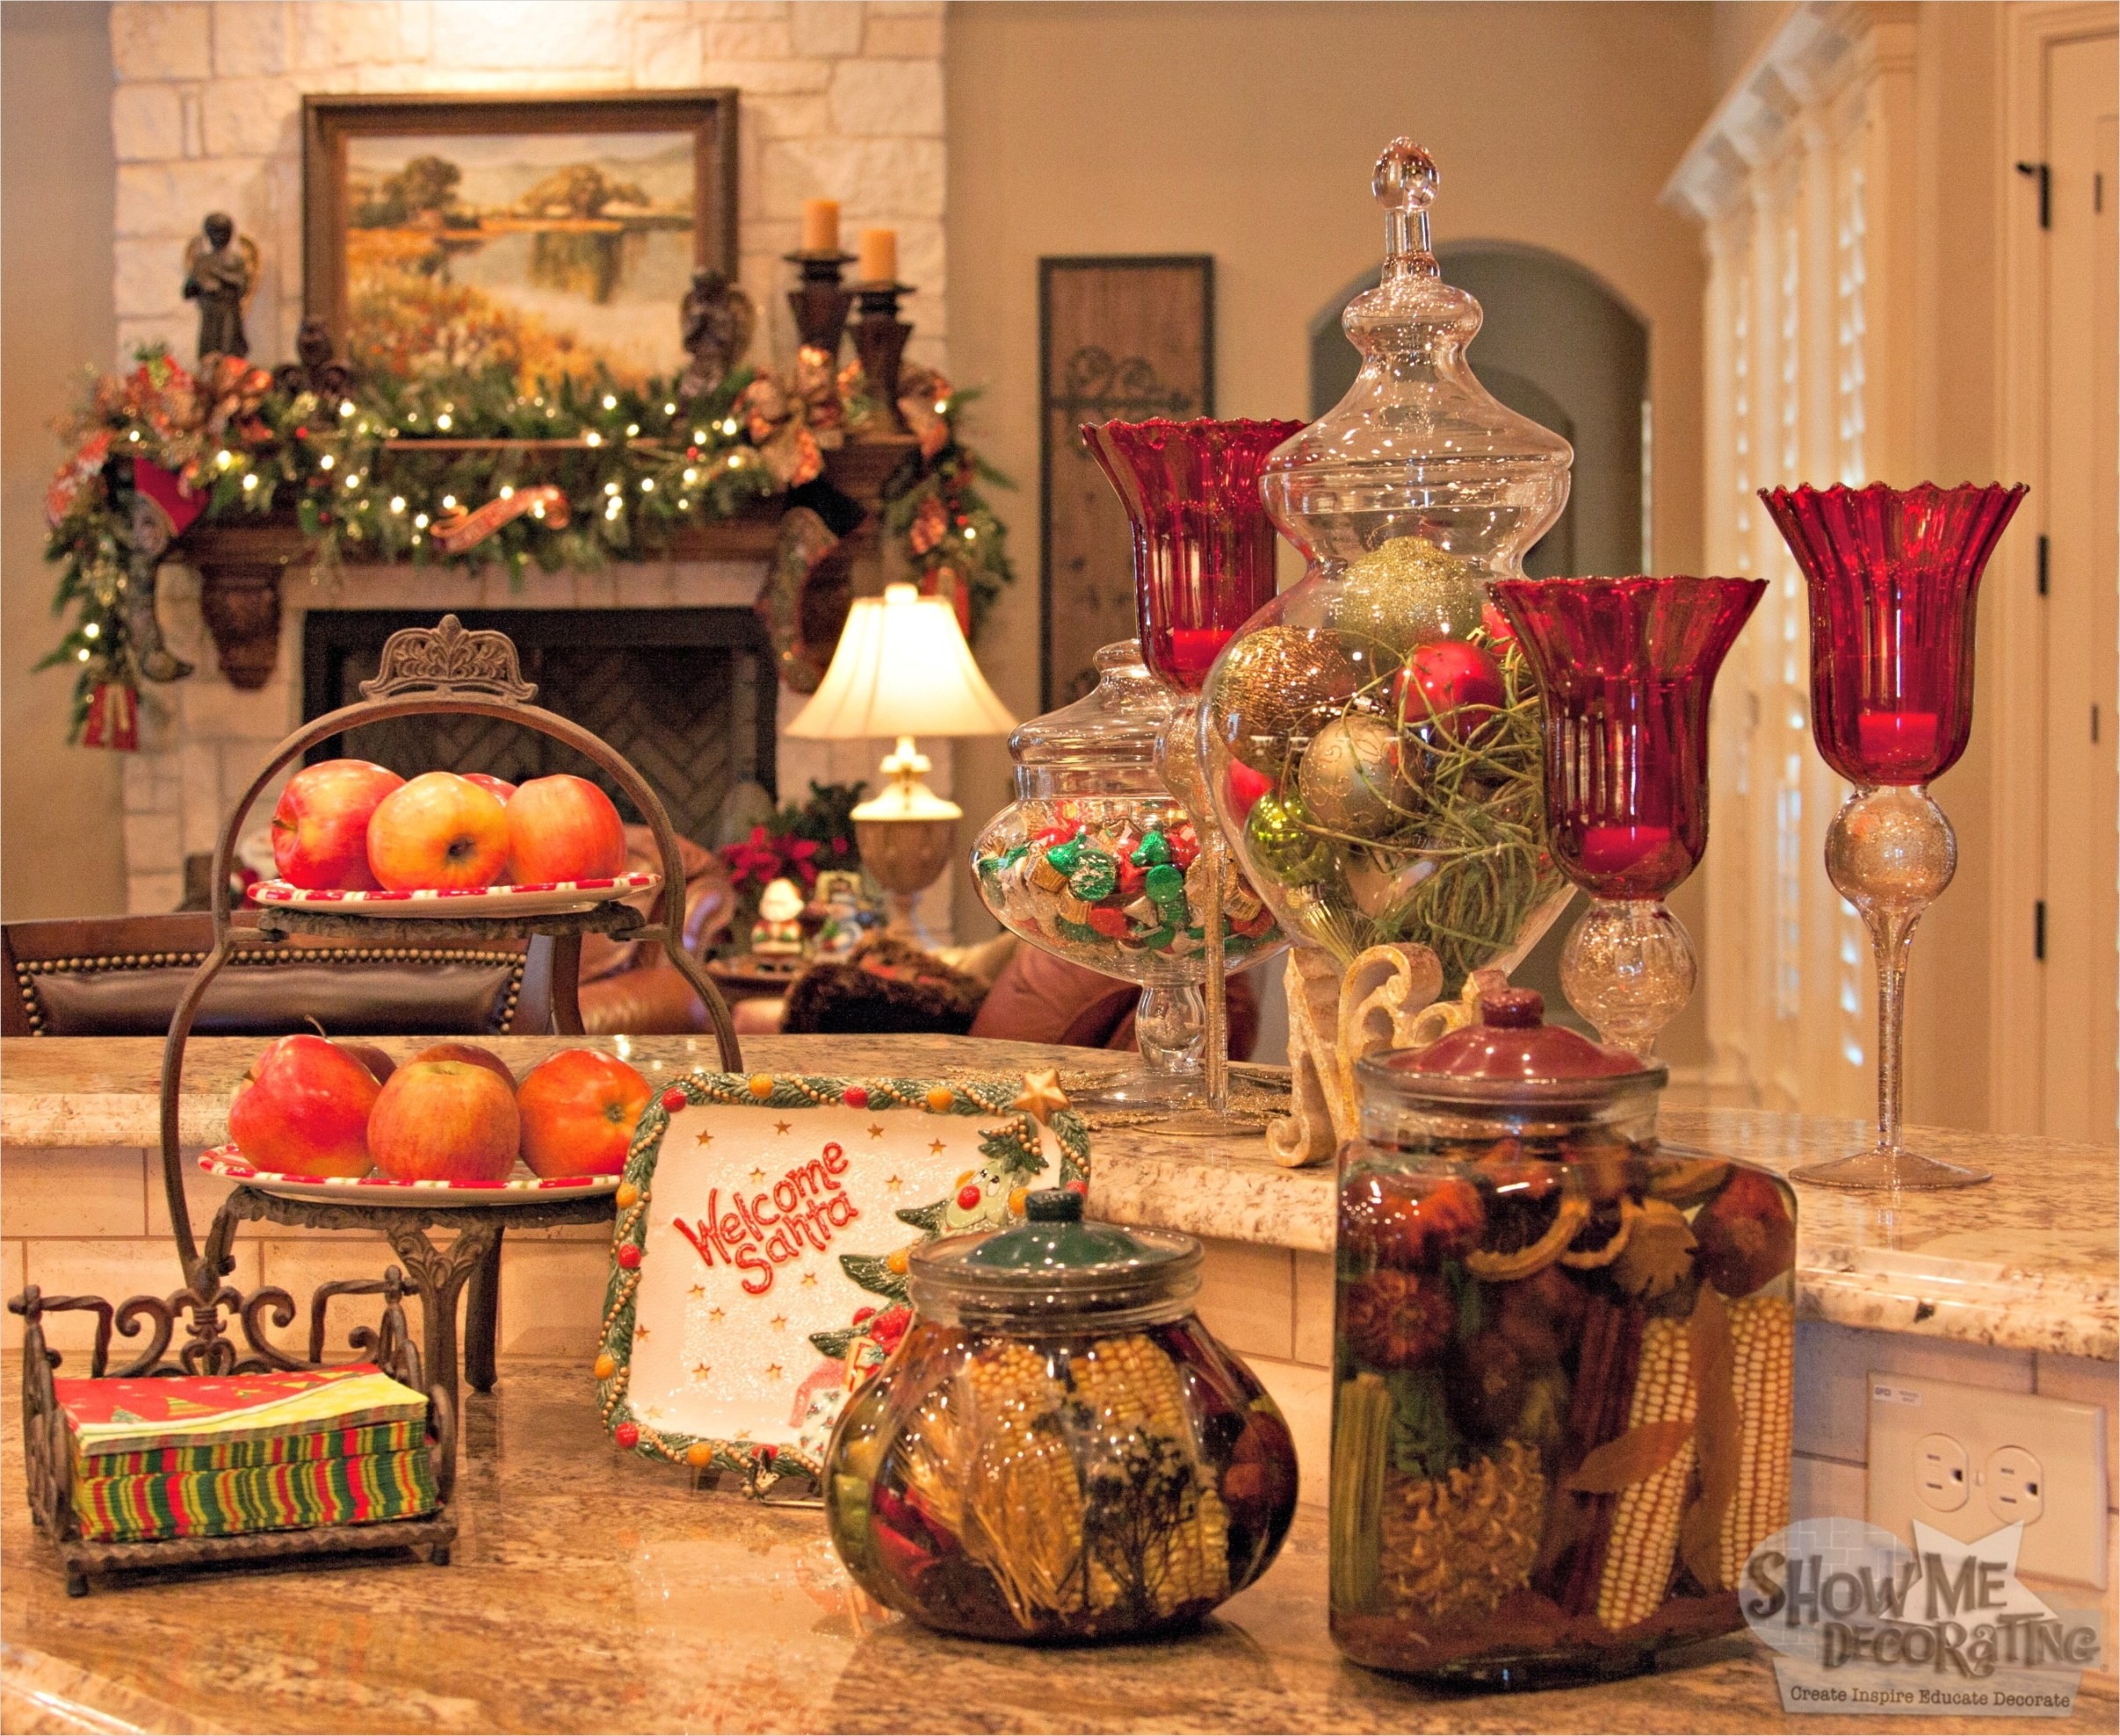 42 Awesome Kitchen Christmas Decorating Ideas 94 Show Me Decorating 3